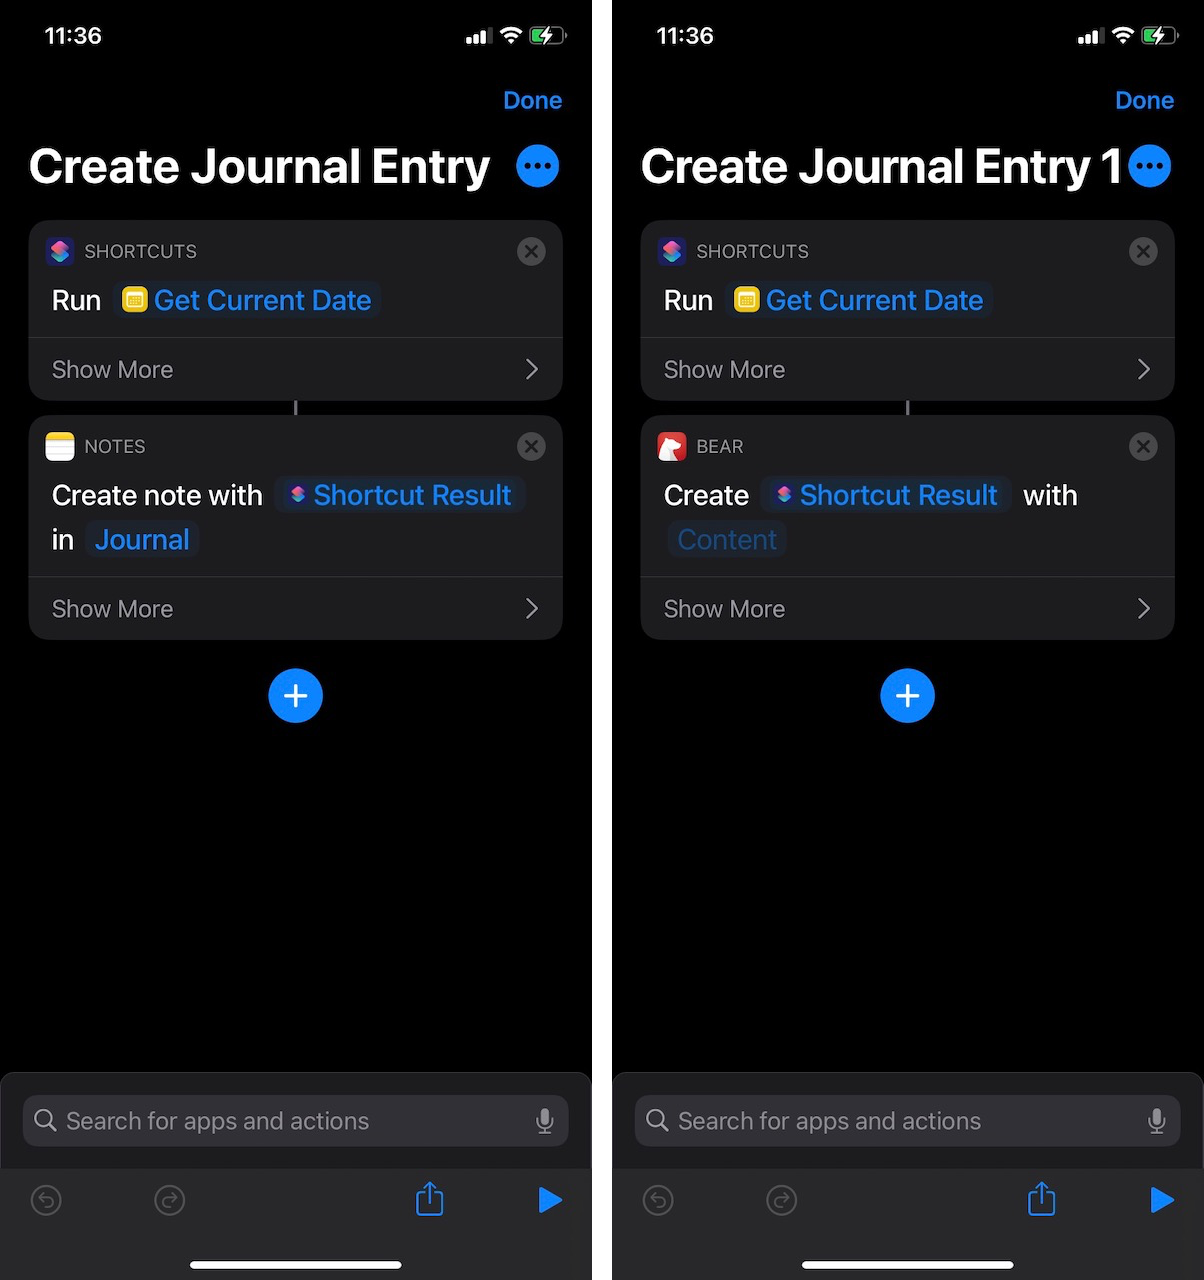 Side by side of Notes shortcut and Bear shortcut